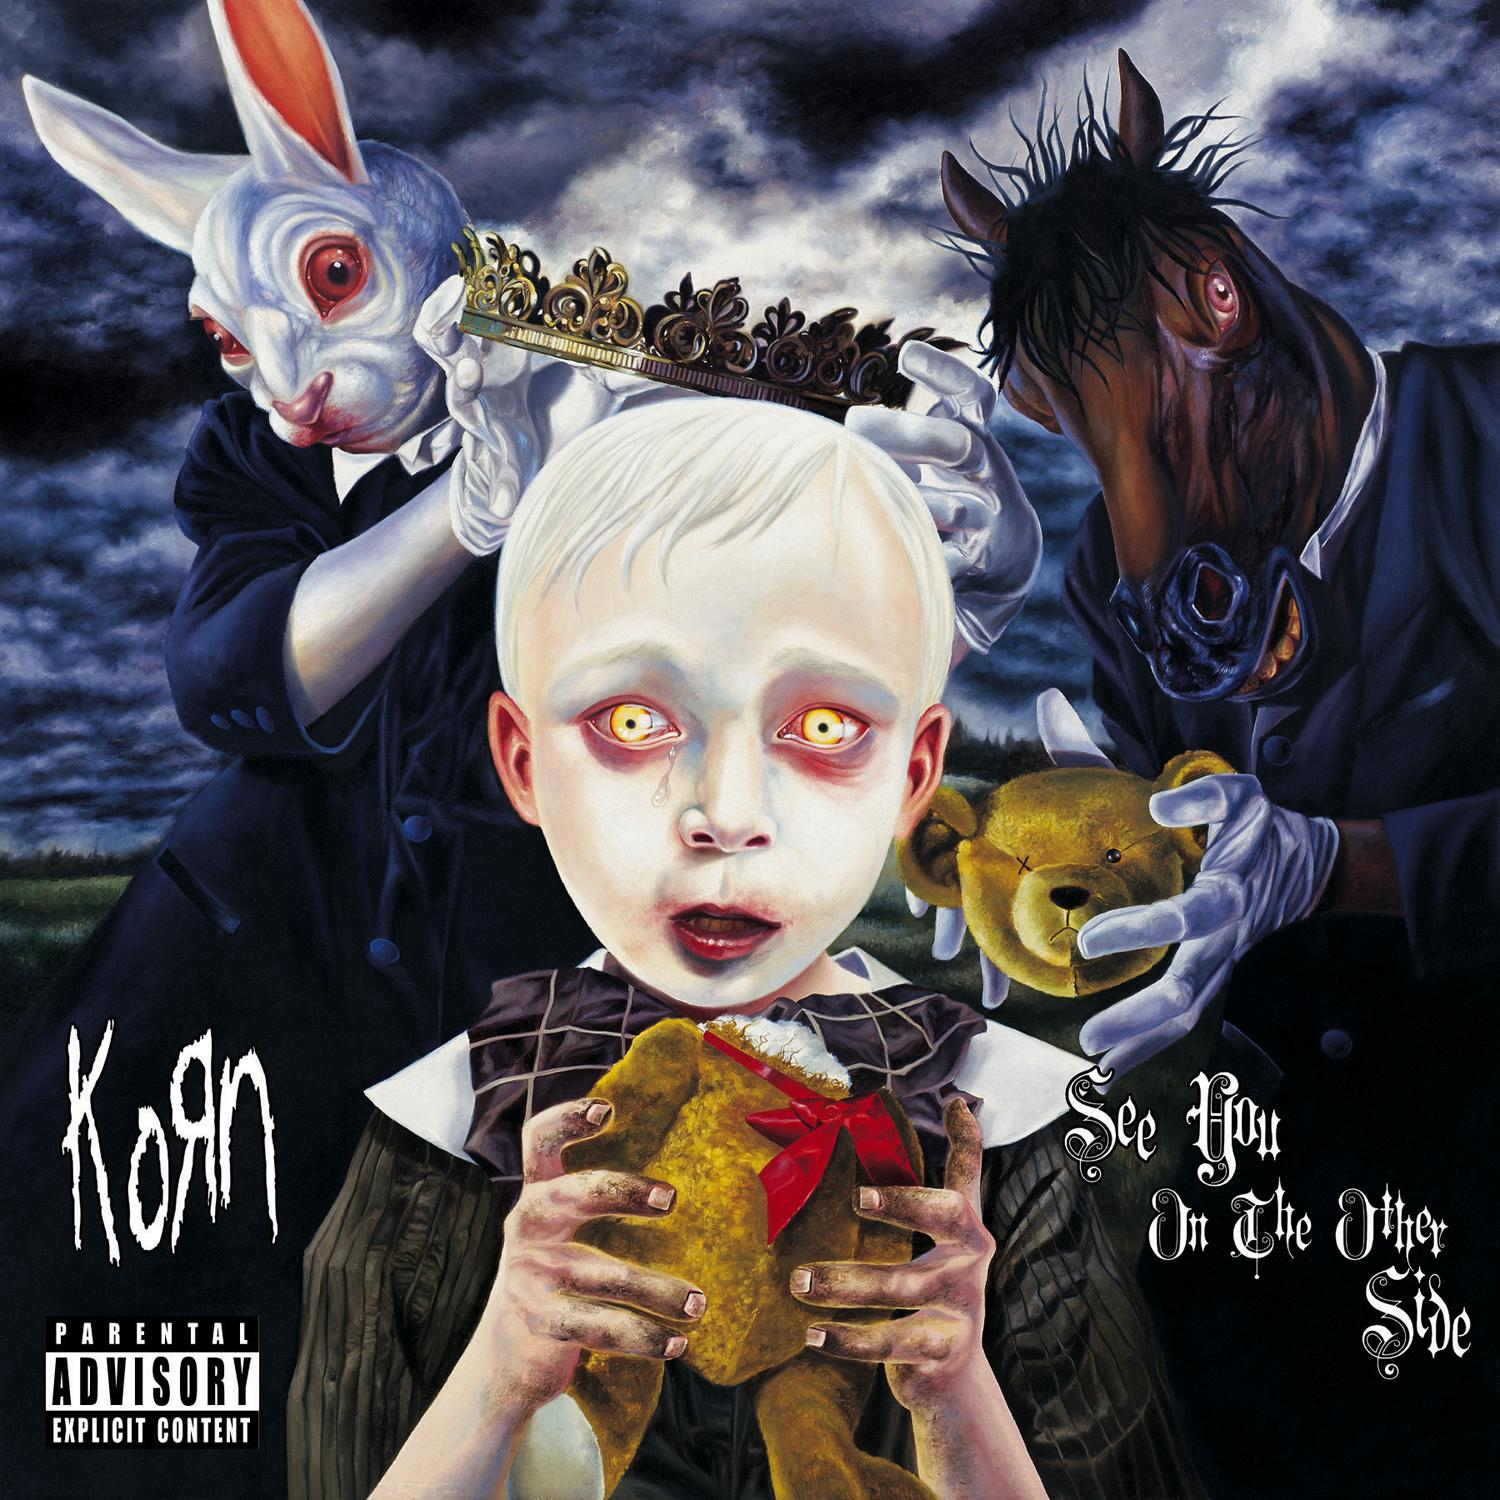 http://thegenealogyofstyle.files.wordpress.com/2013/03/korn.jpg